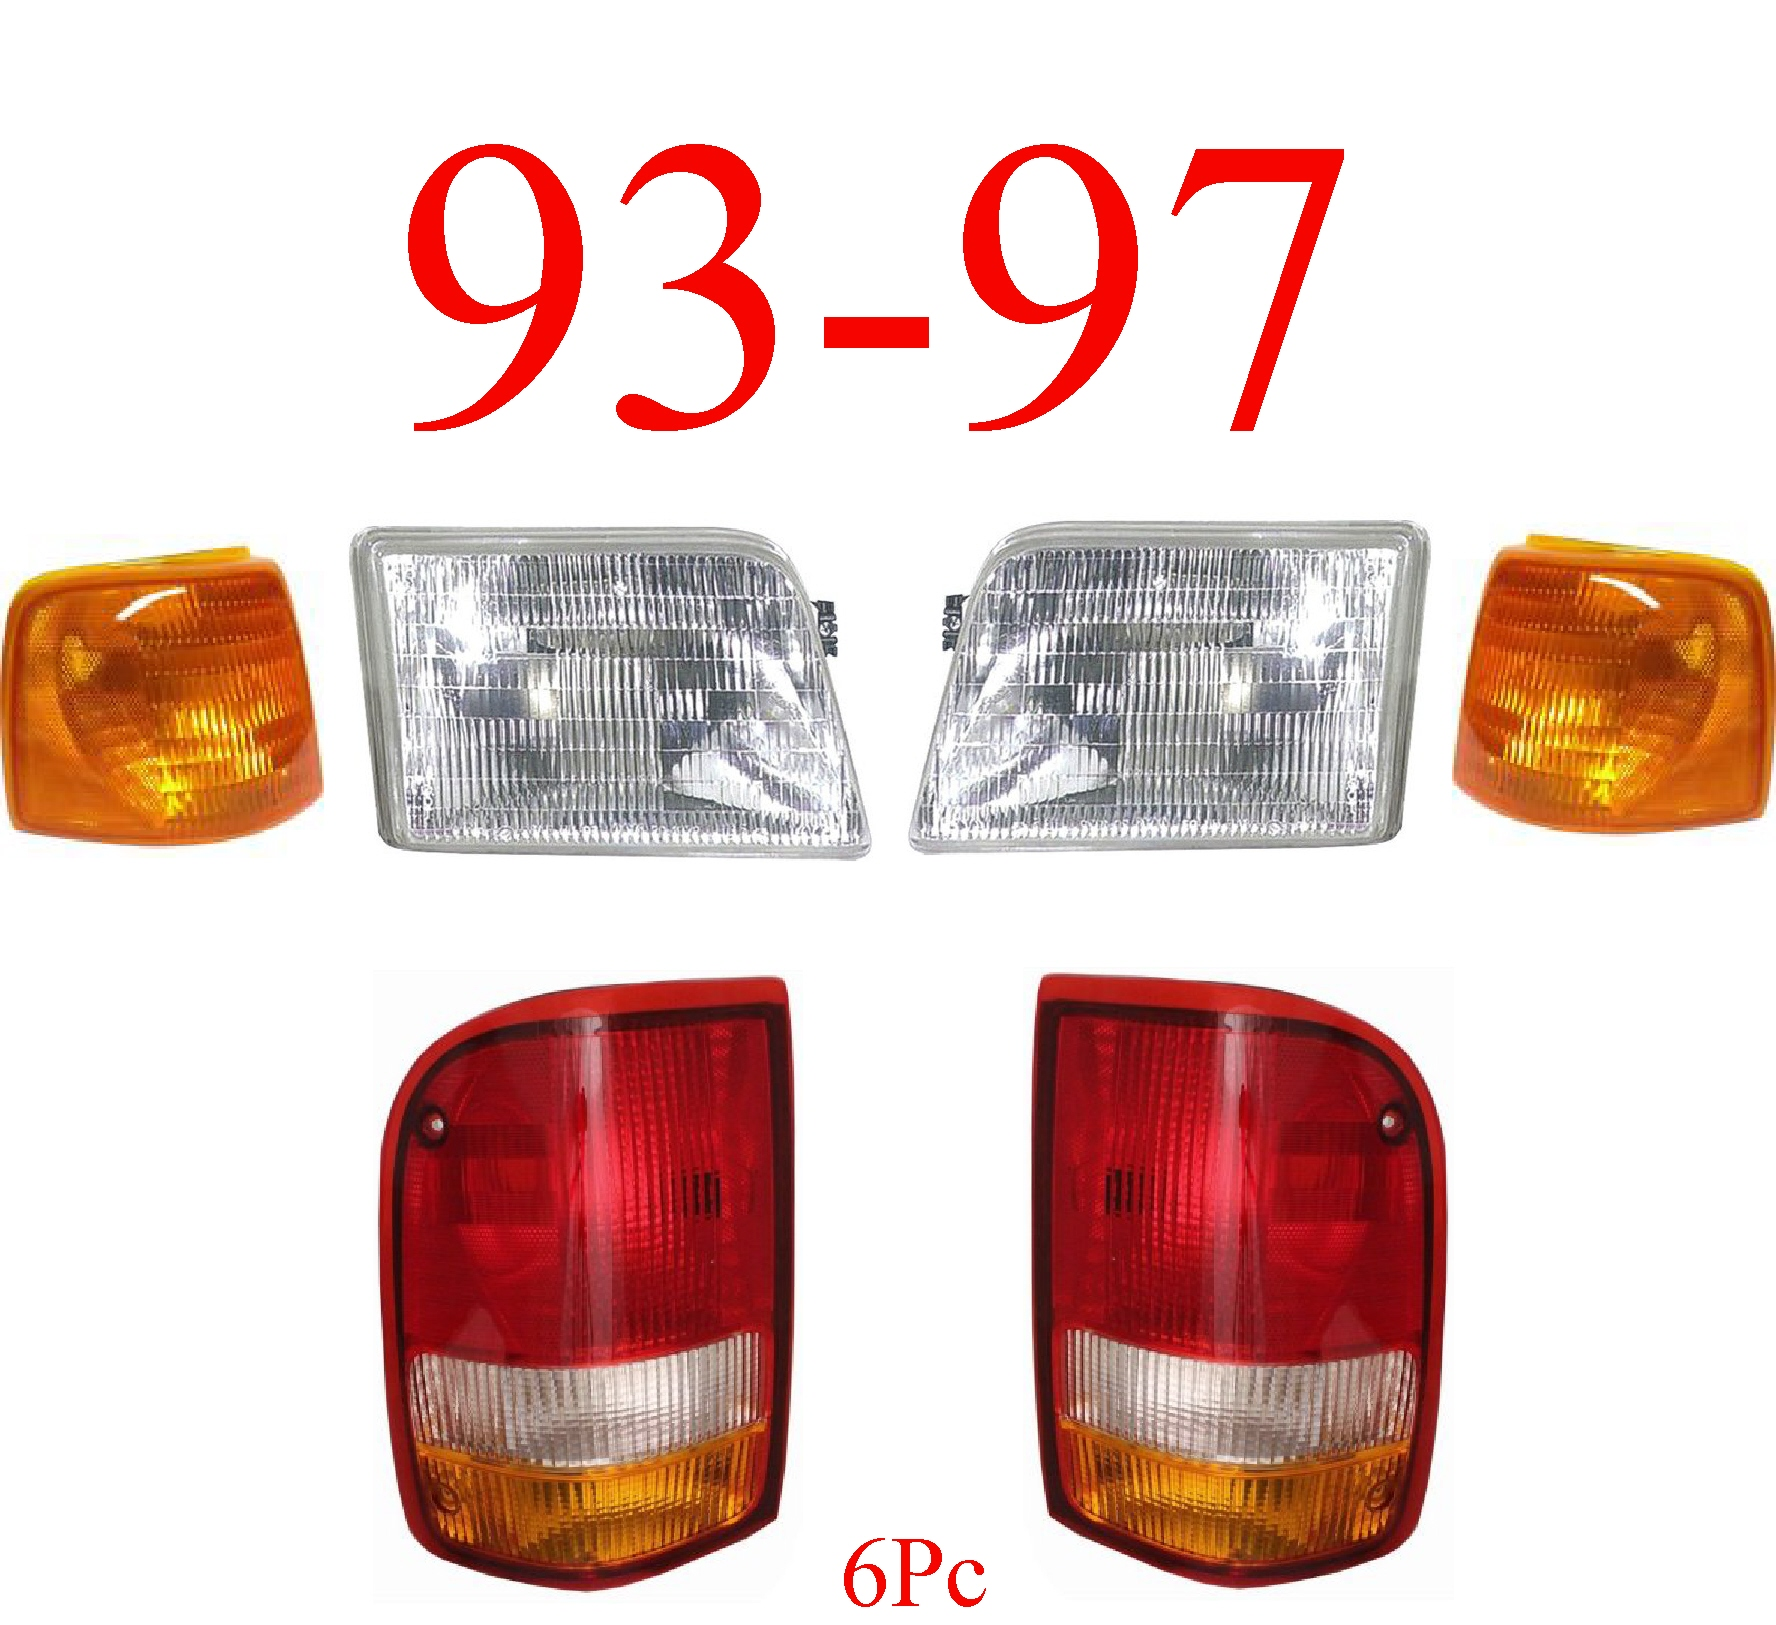 93-97 Ford Ranger 6Pc Head, Side & Tail Light Kit